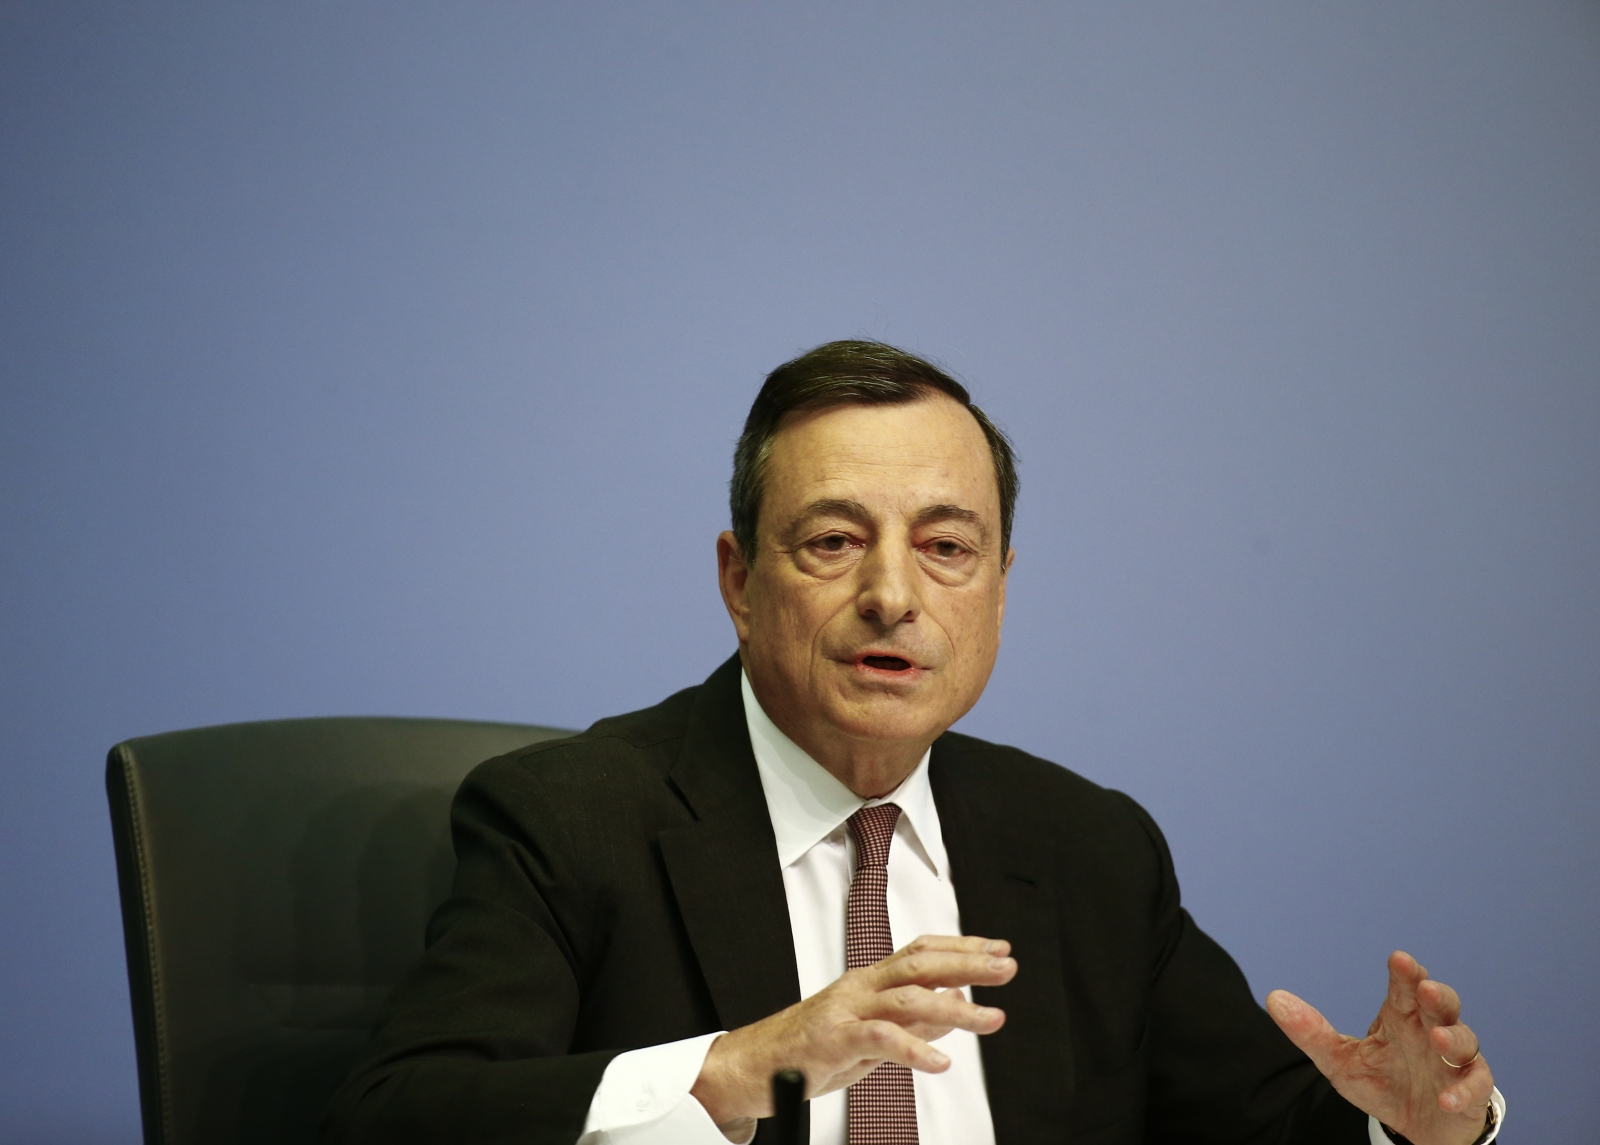 Draghi during monetary policy conference